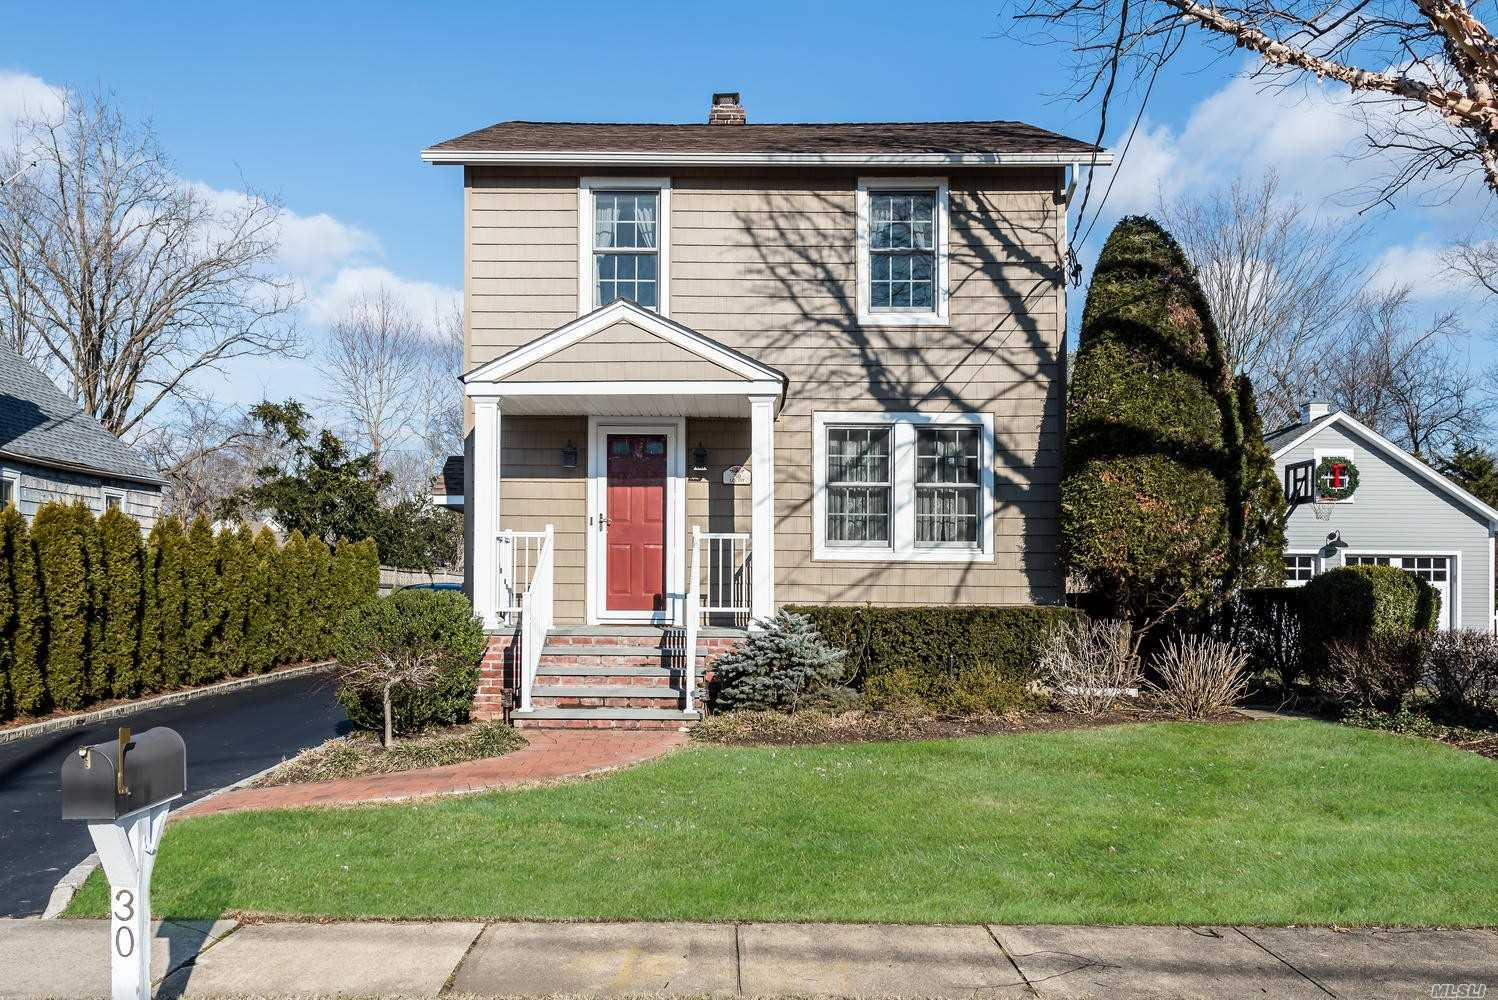 Updated And Impeccable 1924 Colonial. Cac, Generator, Newer Siding, All New Anderson Replacement Windows, Granite Eik, 10 Yr Roof., Walking Distance To Muttontown Preserve!!! Oversized Garage With Pull Down To Large Standup Storage Area.